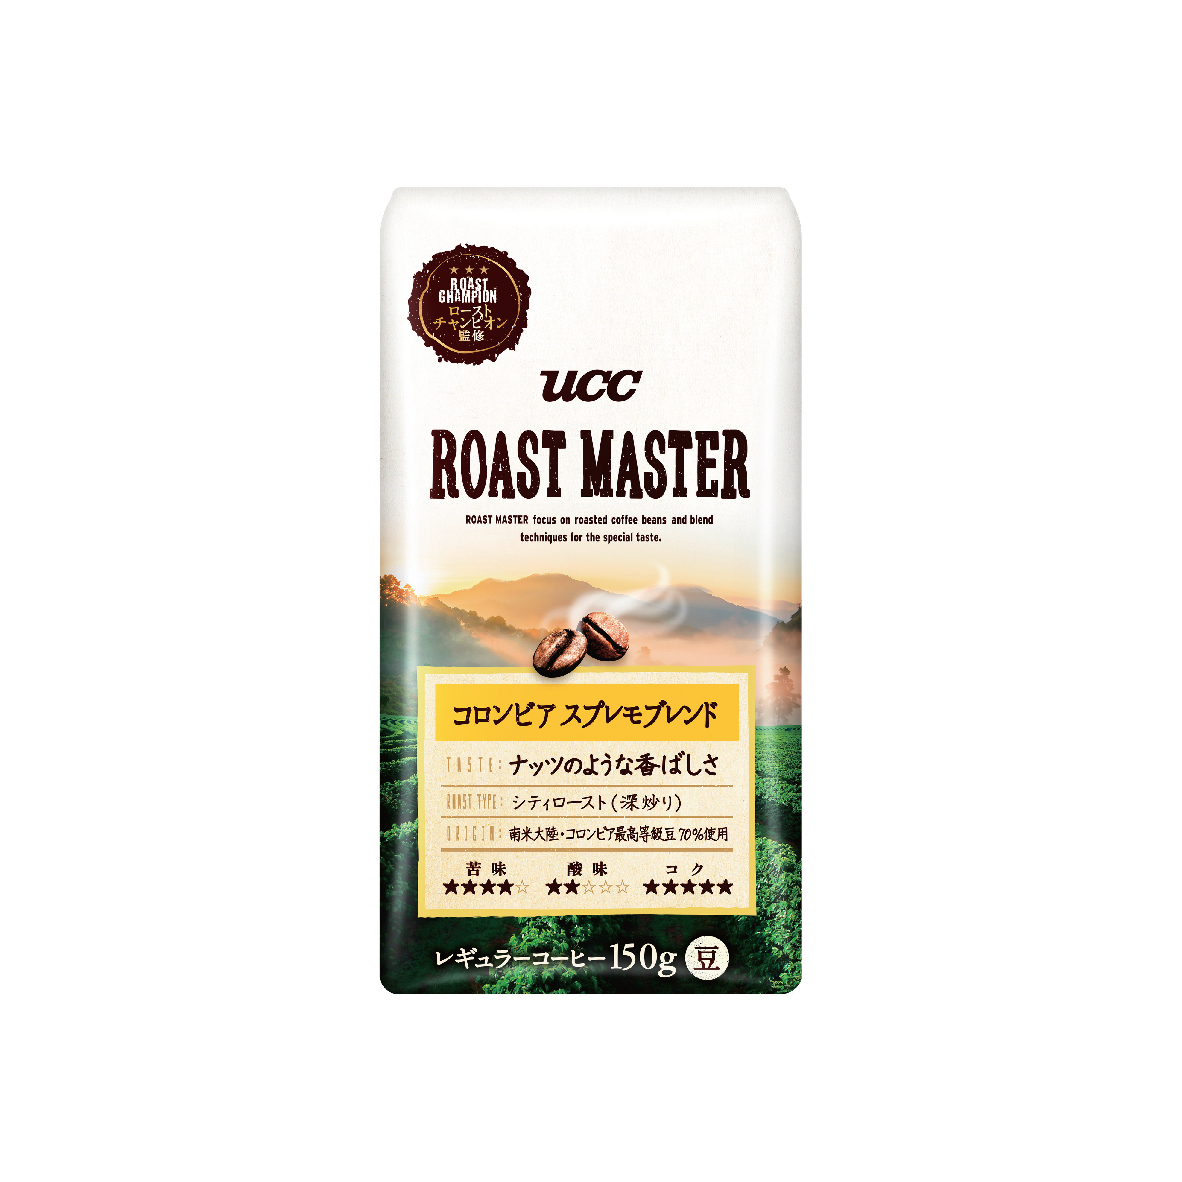 UCC Roast Master Columbia Supremo Coffee Blend Roasted Coffee Beans